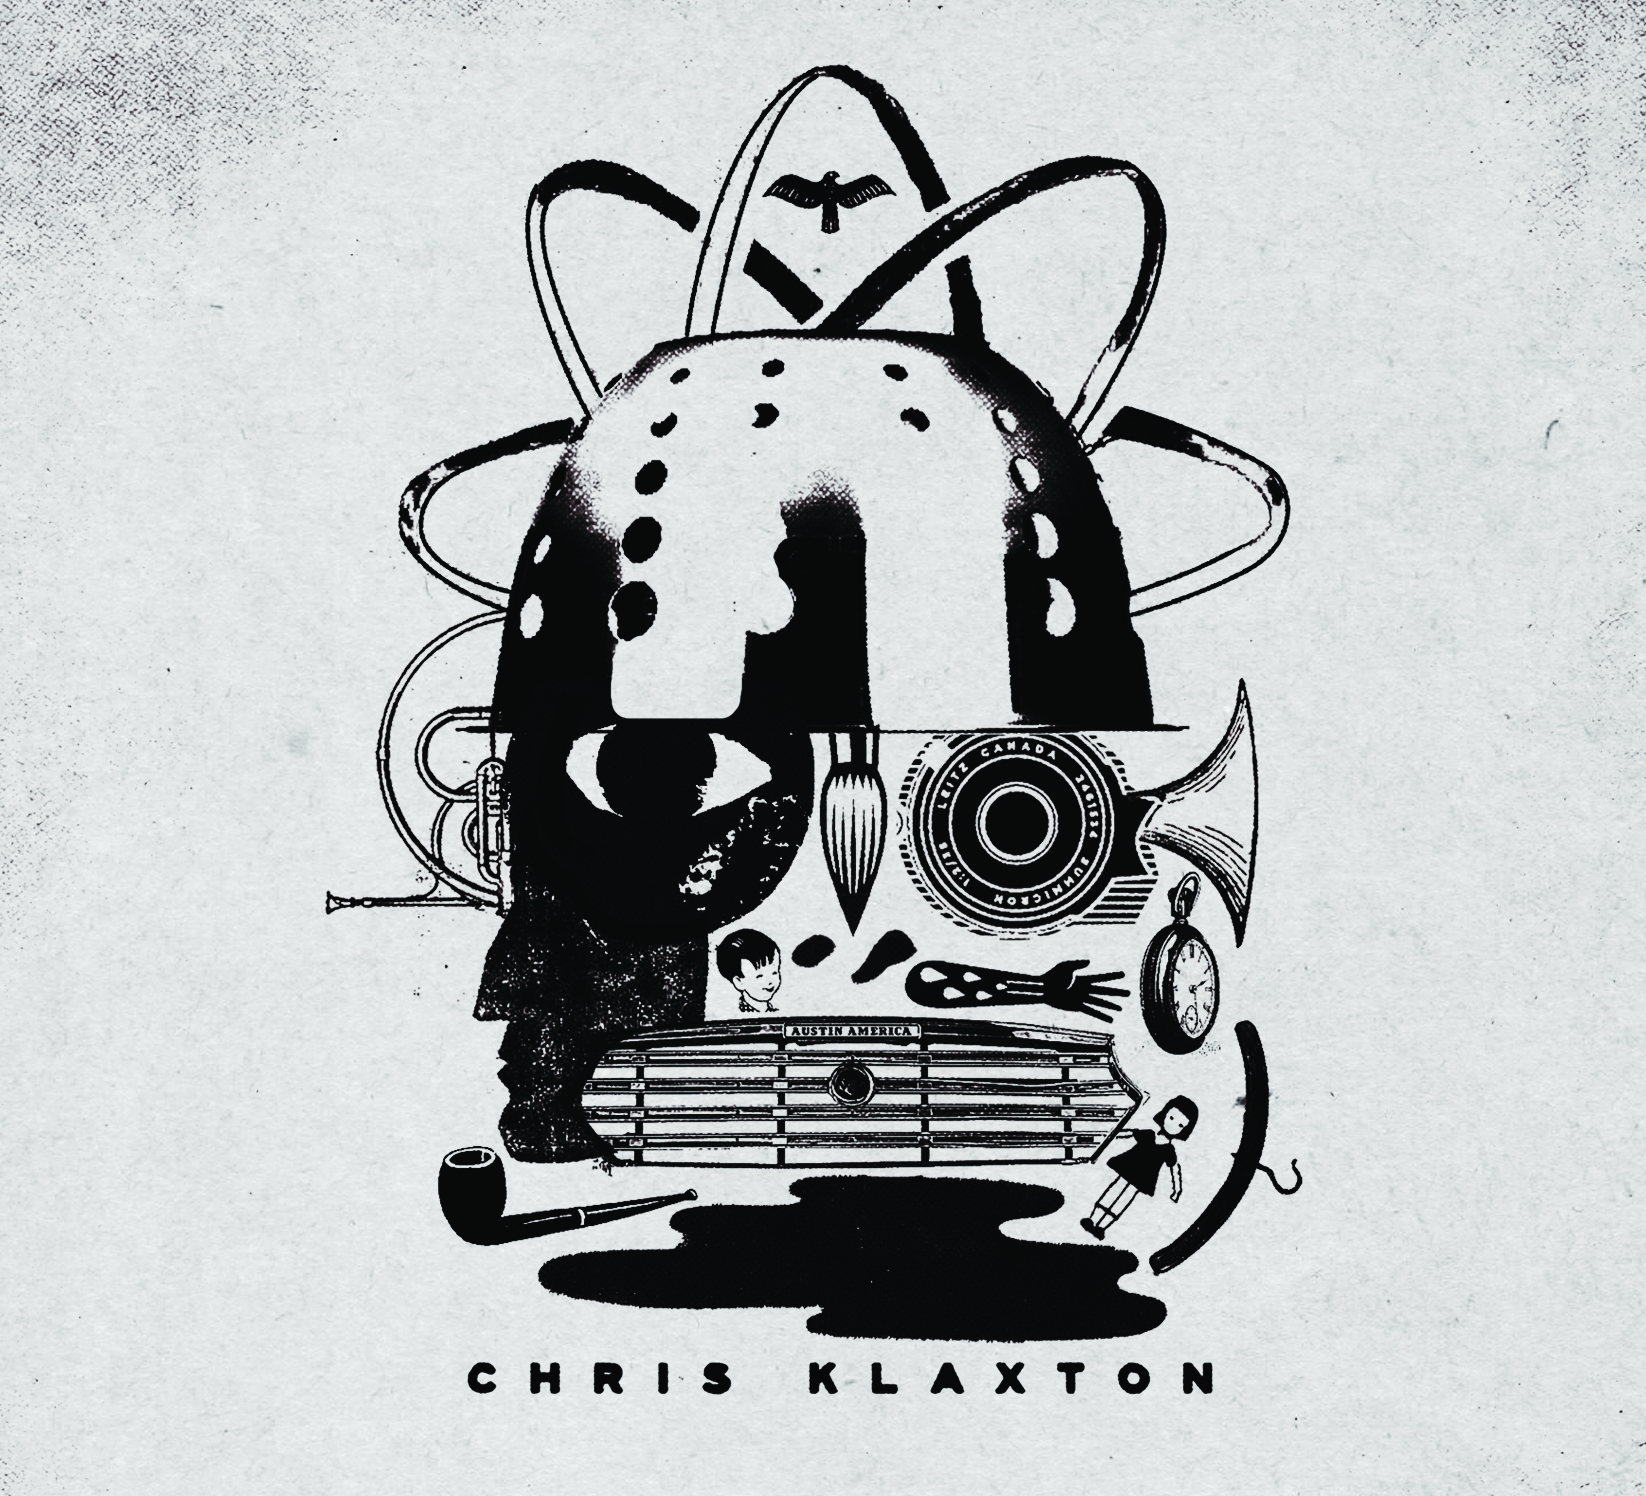 Collage by Chris Klaxton Reviewed by All About Jazz!